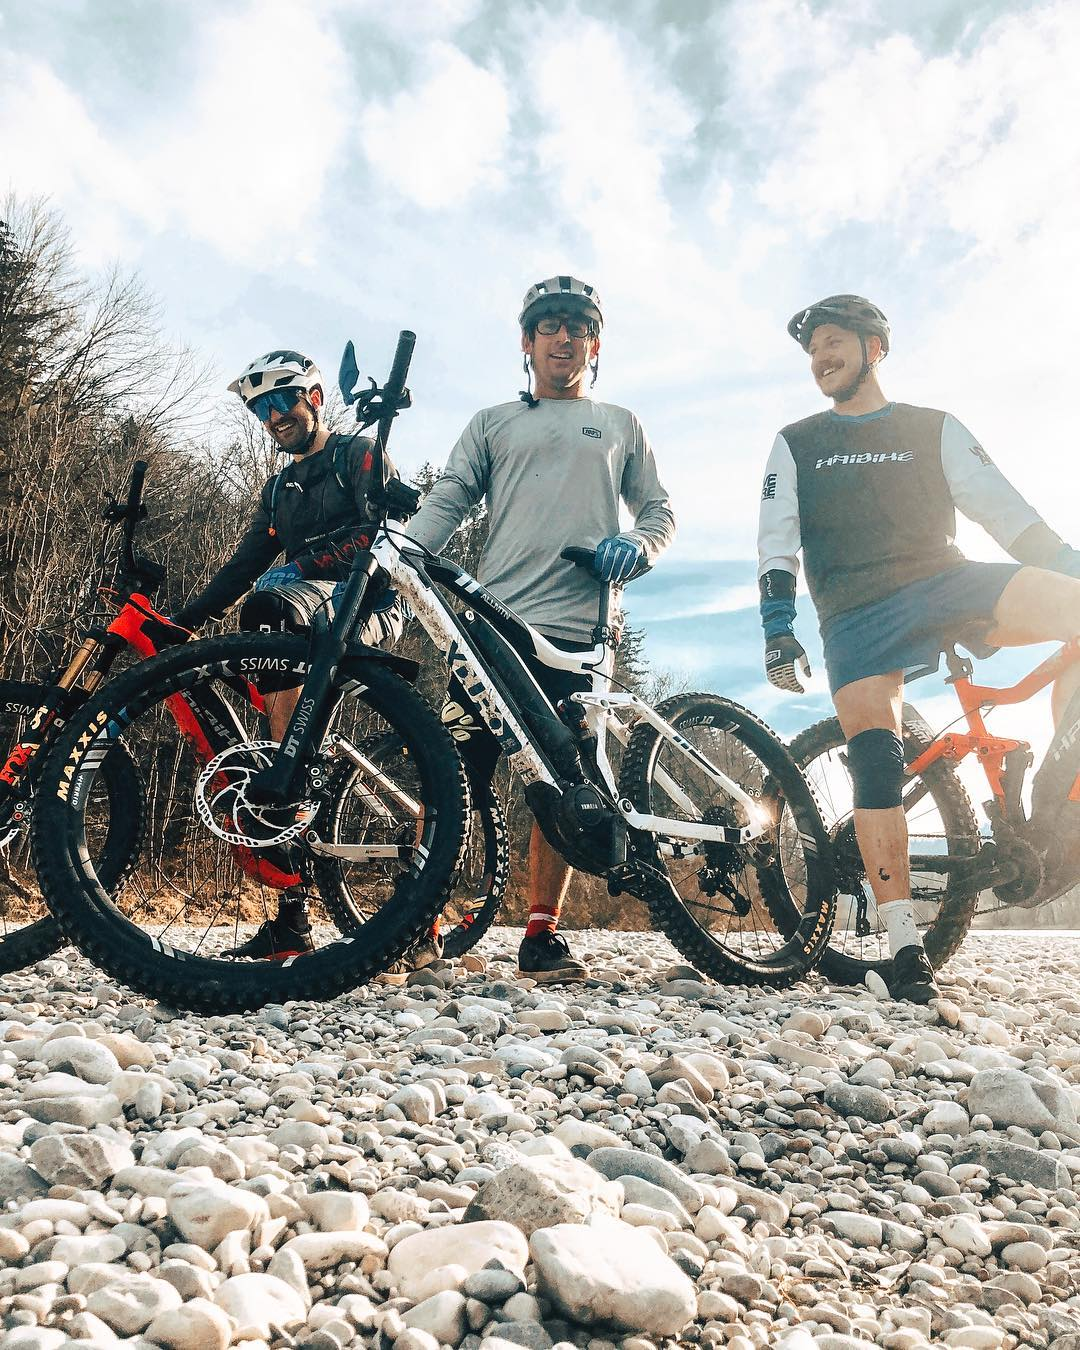 First #fridayrideday of 2019 ! Yea! Missing @benna292 @kempf01 @paipaipaipaipaipaipaipaipai  and @hendrikschaefers !!! #agencylife #ride100percent #haibike #emtb #weareeperformance